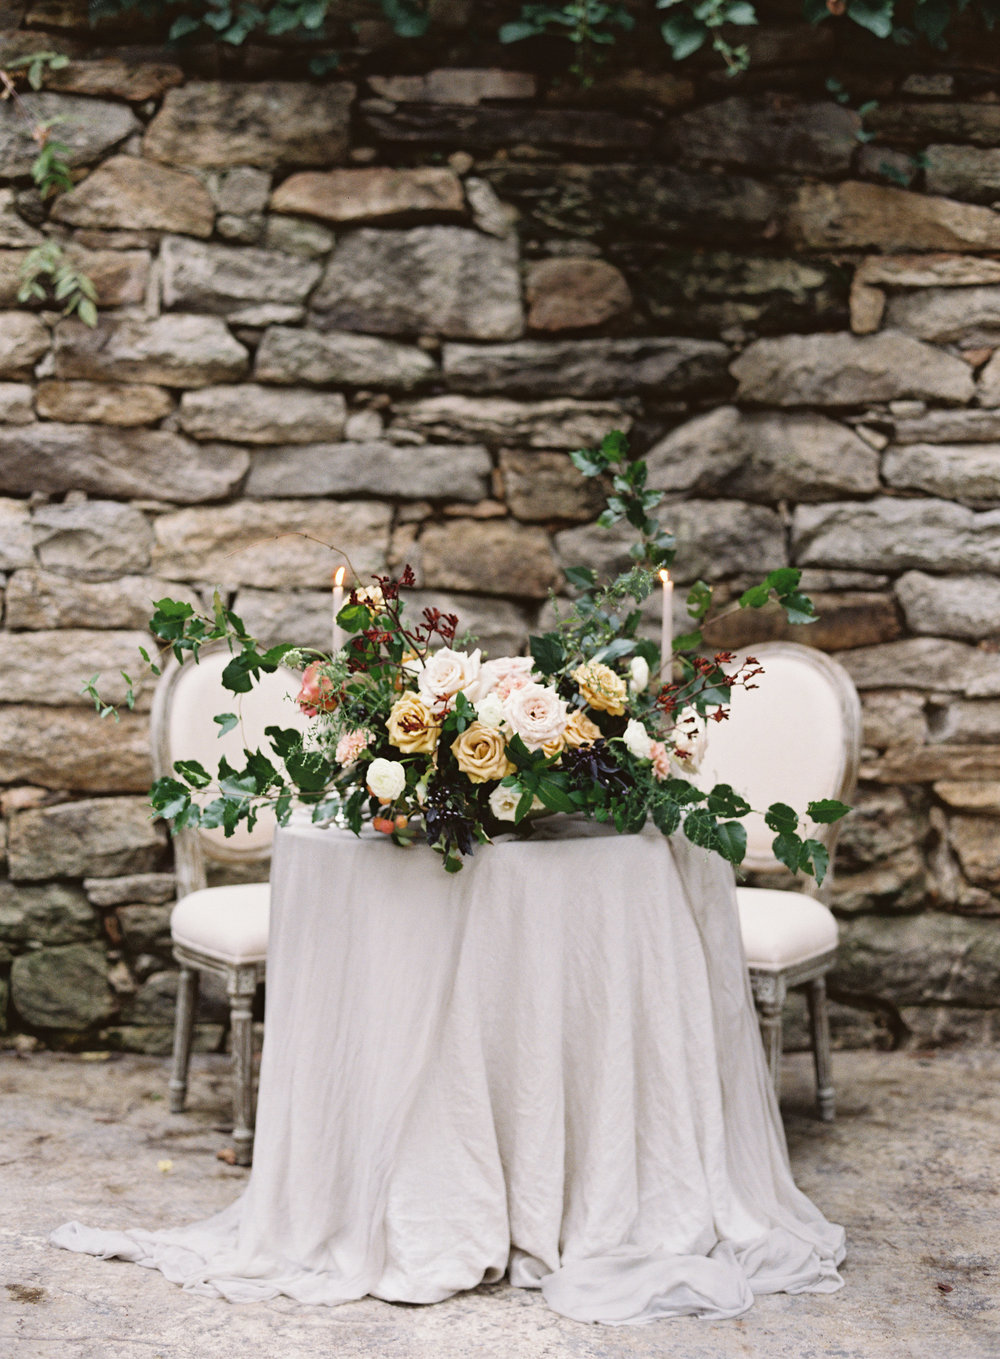 Autumn Wedding Inspiration at the Mill at Fine Creek by Richmond Virginia Wedding Planner East Made Event Company and Michael and Carina Photography73.jpg